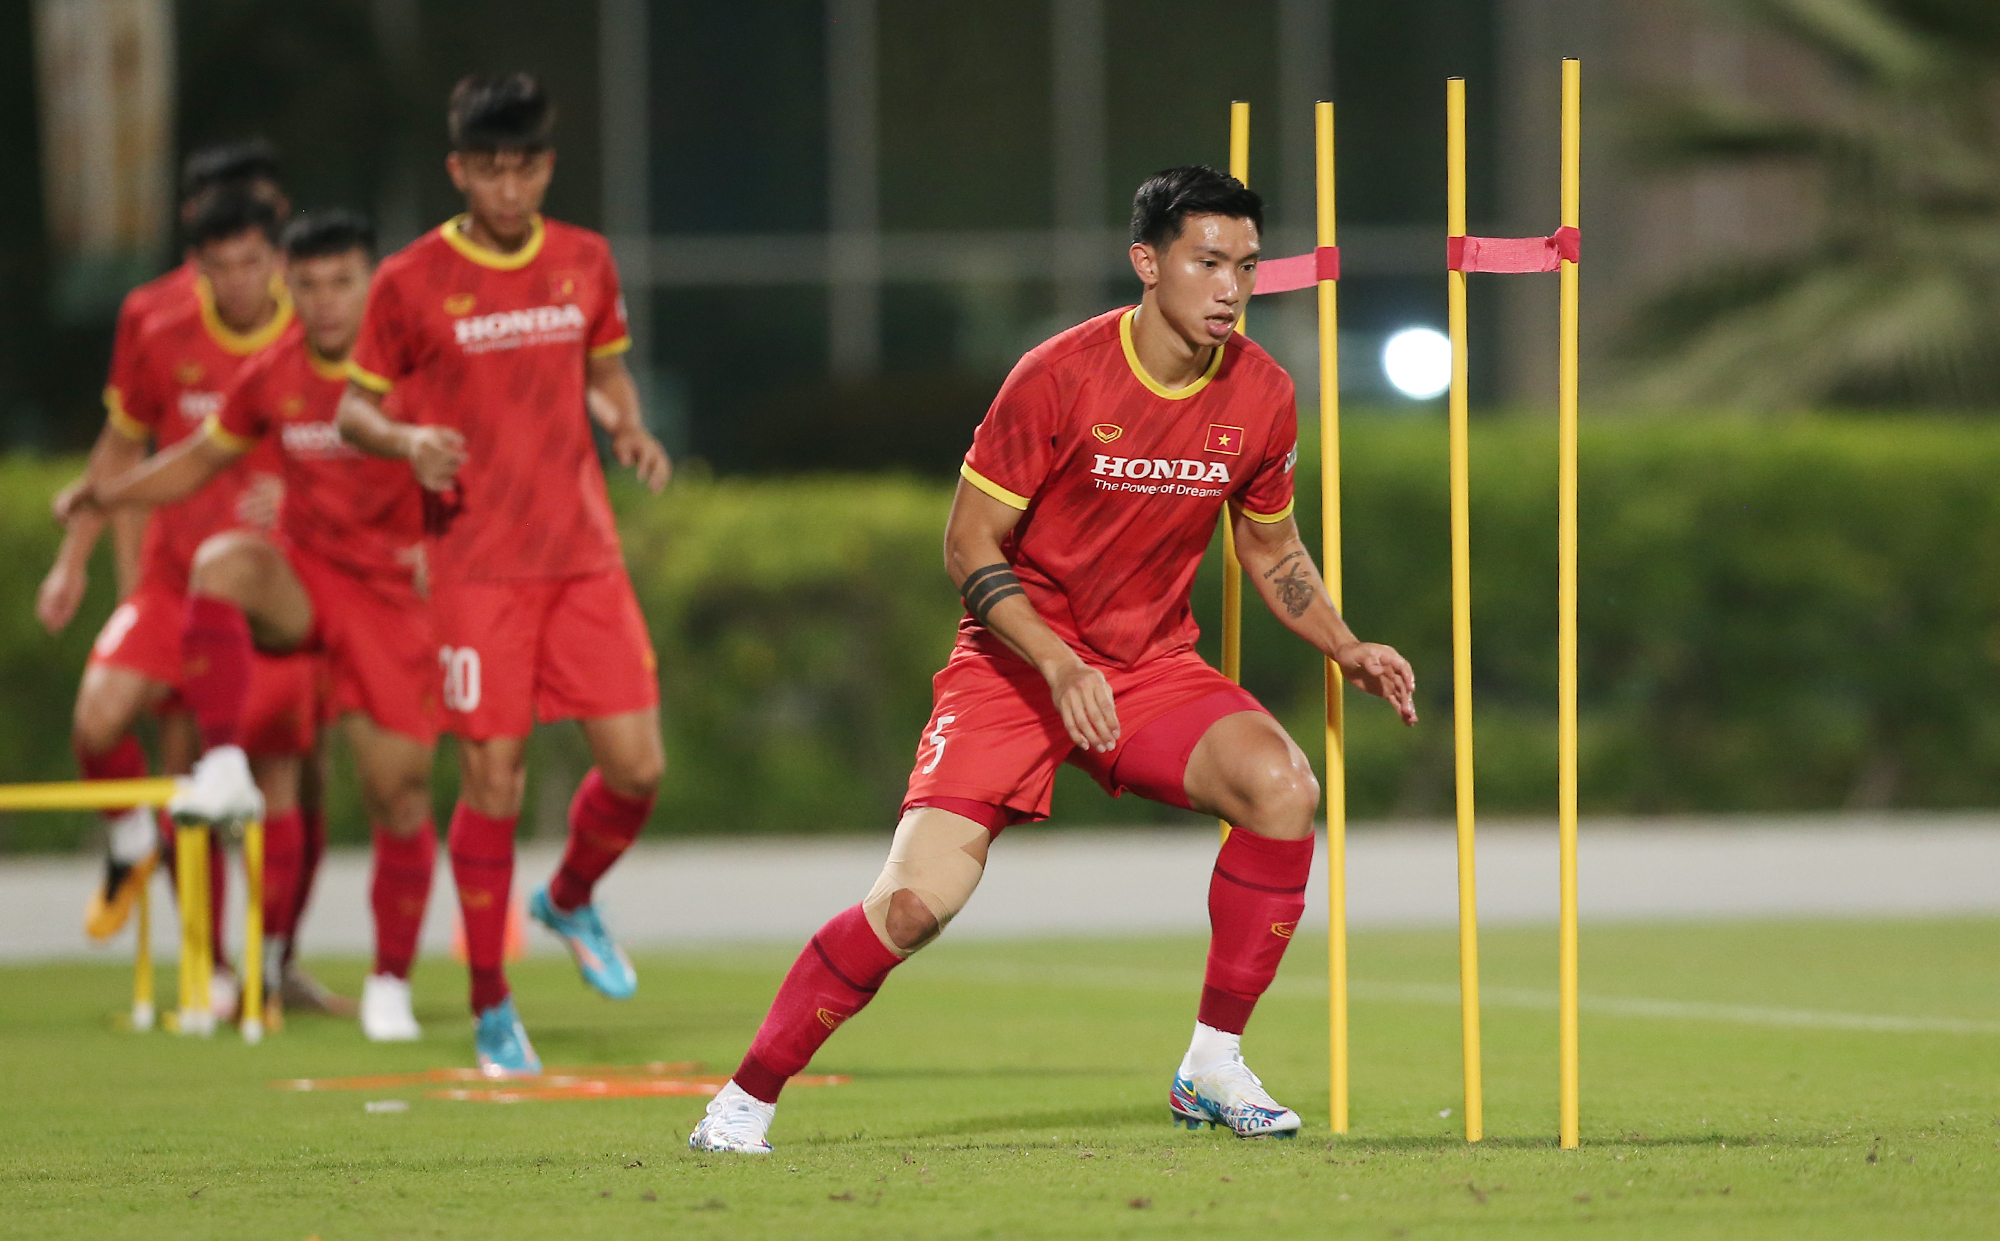 Defender Doan Van Hau still bandages his right leg, but insists he has completely recovered and is ready to wait for the opportunity to play.